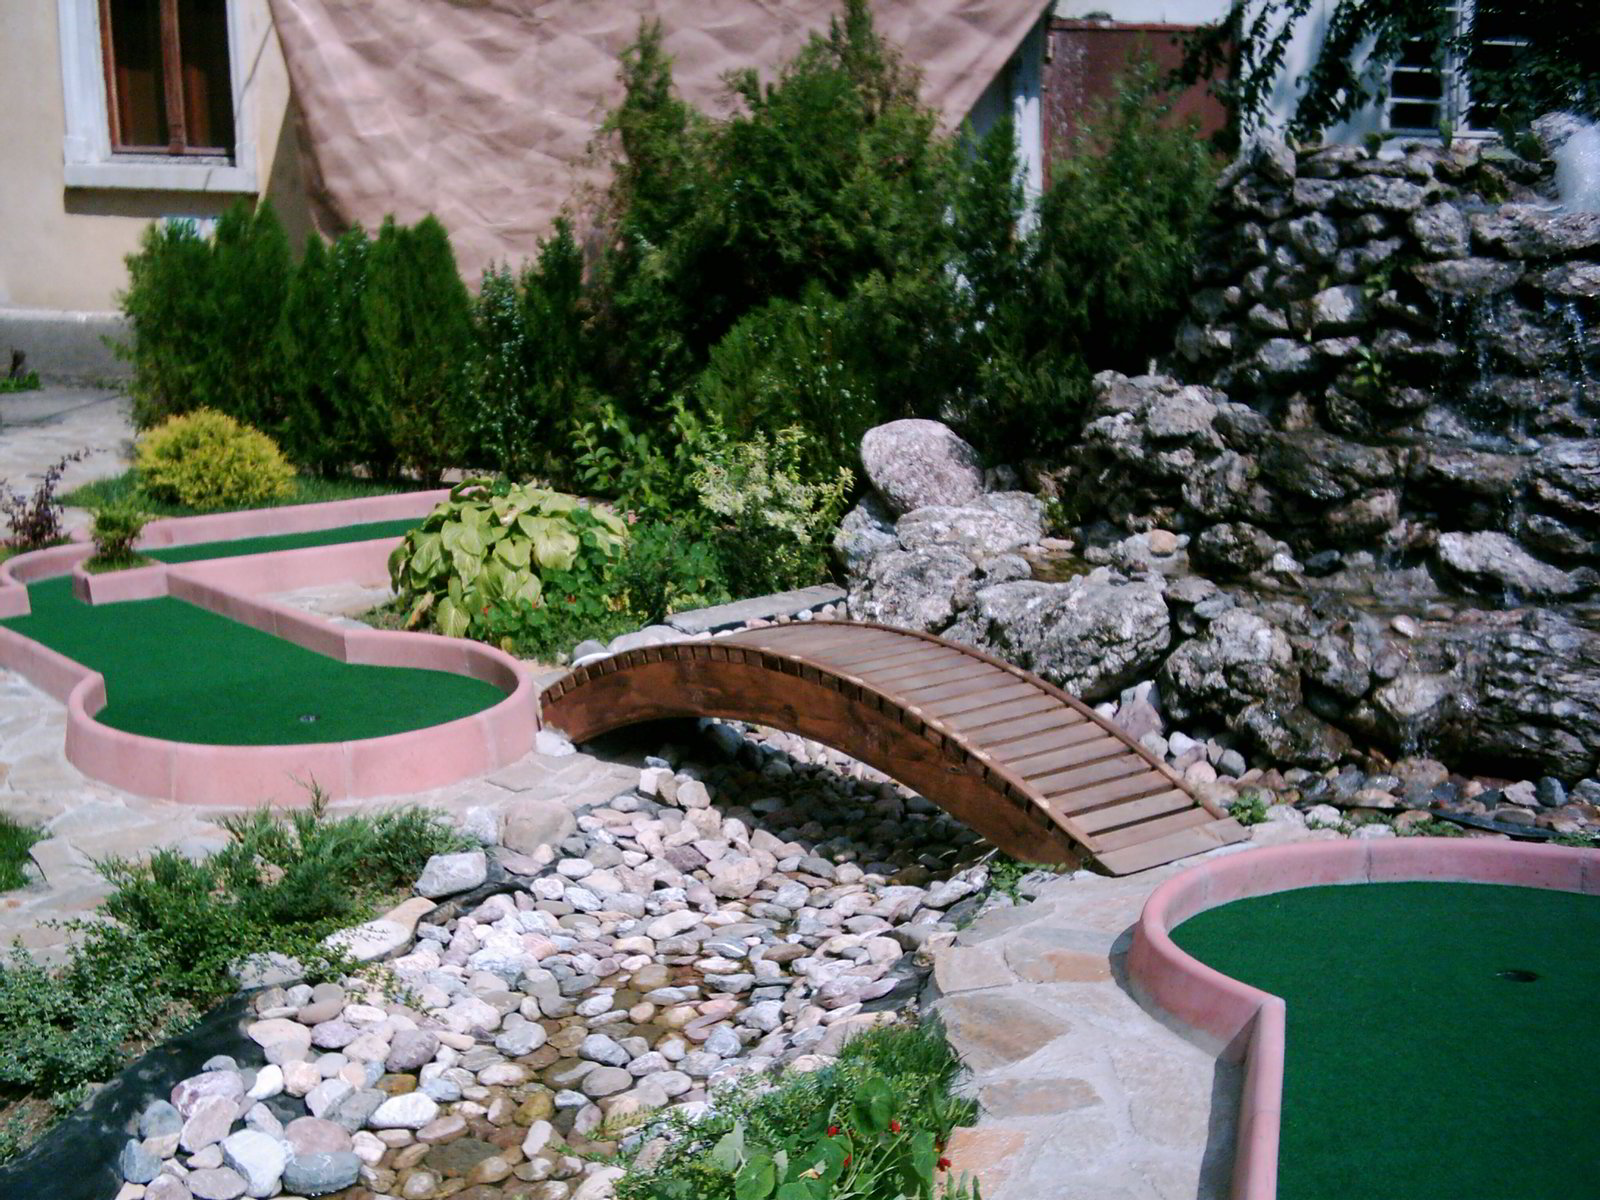 build miniature golf course